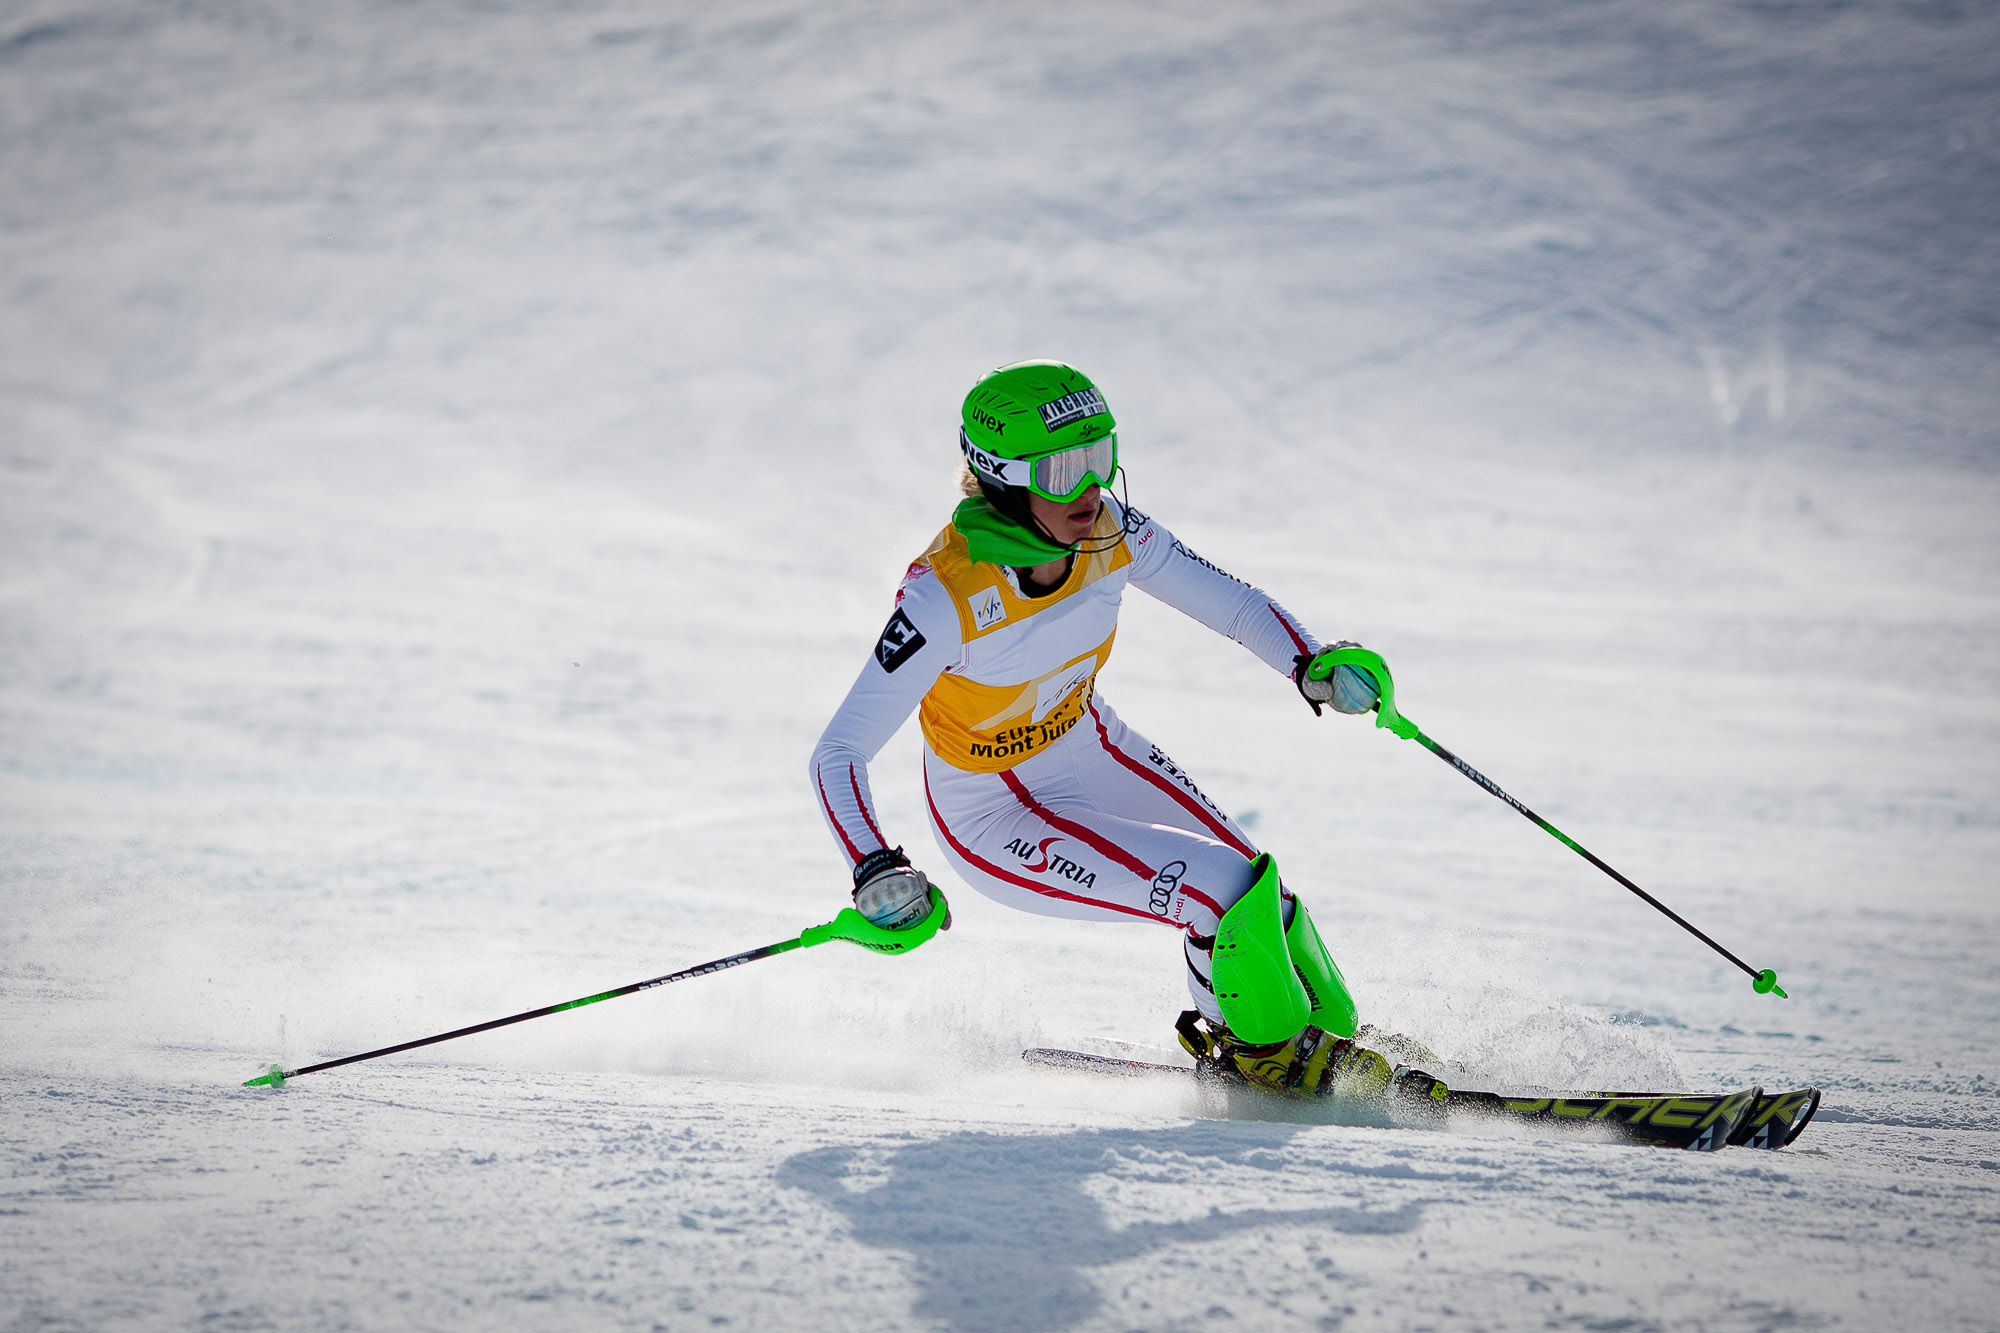 Coupe_Europe_ski_dames-414.jpg